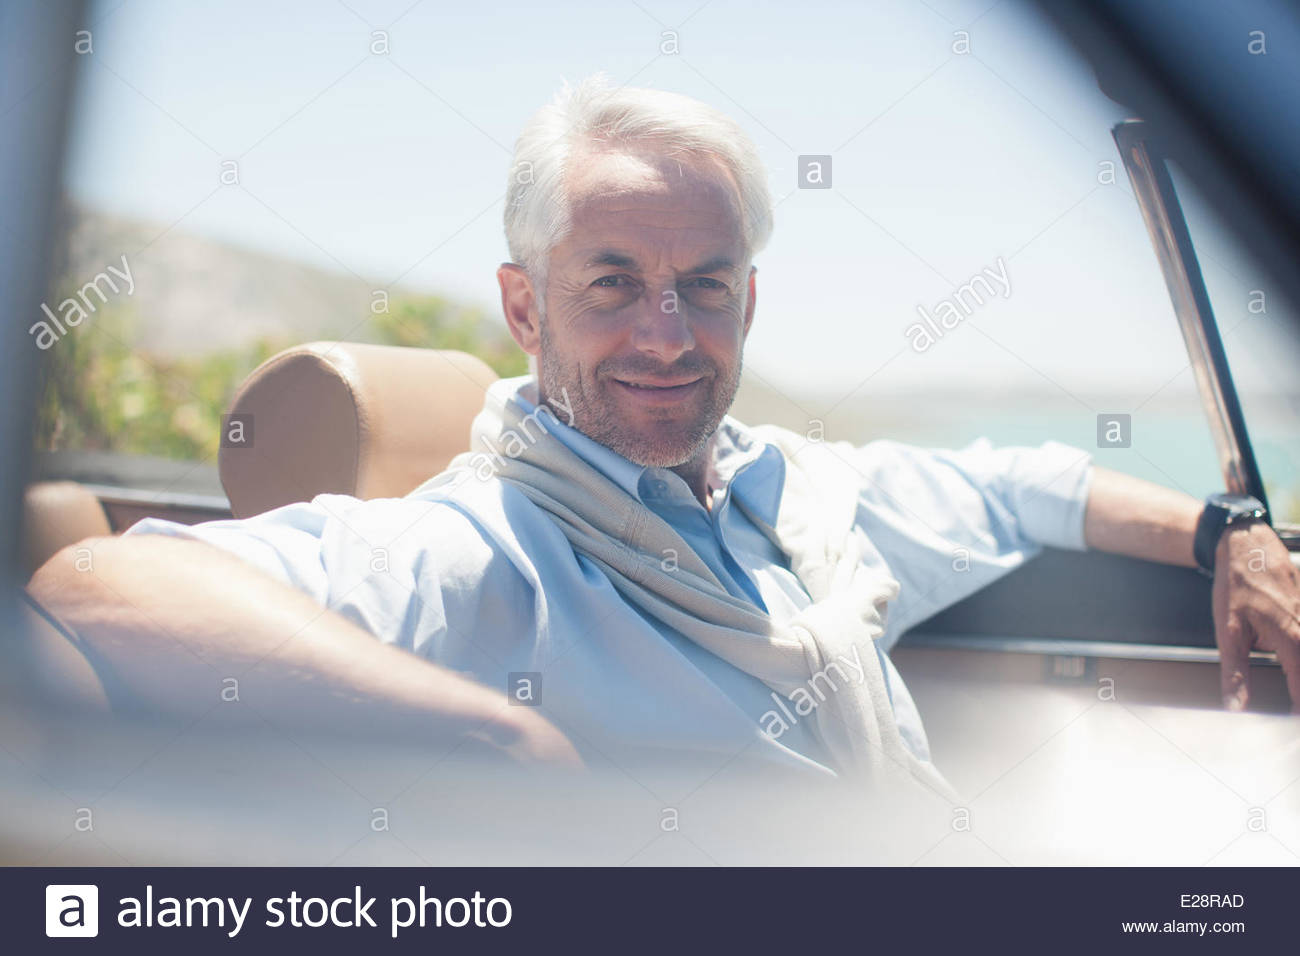 Man in convertible - Stock Image